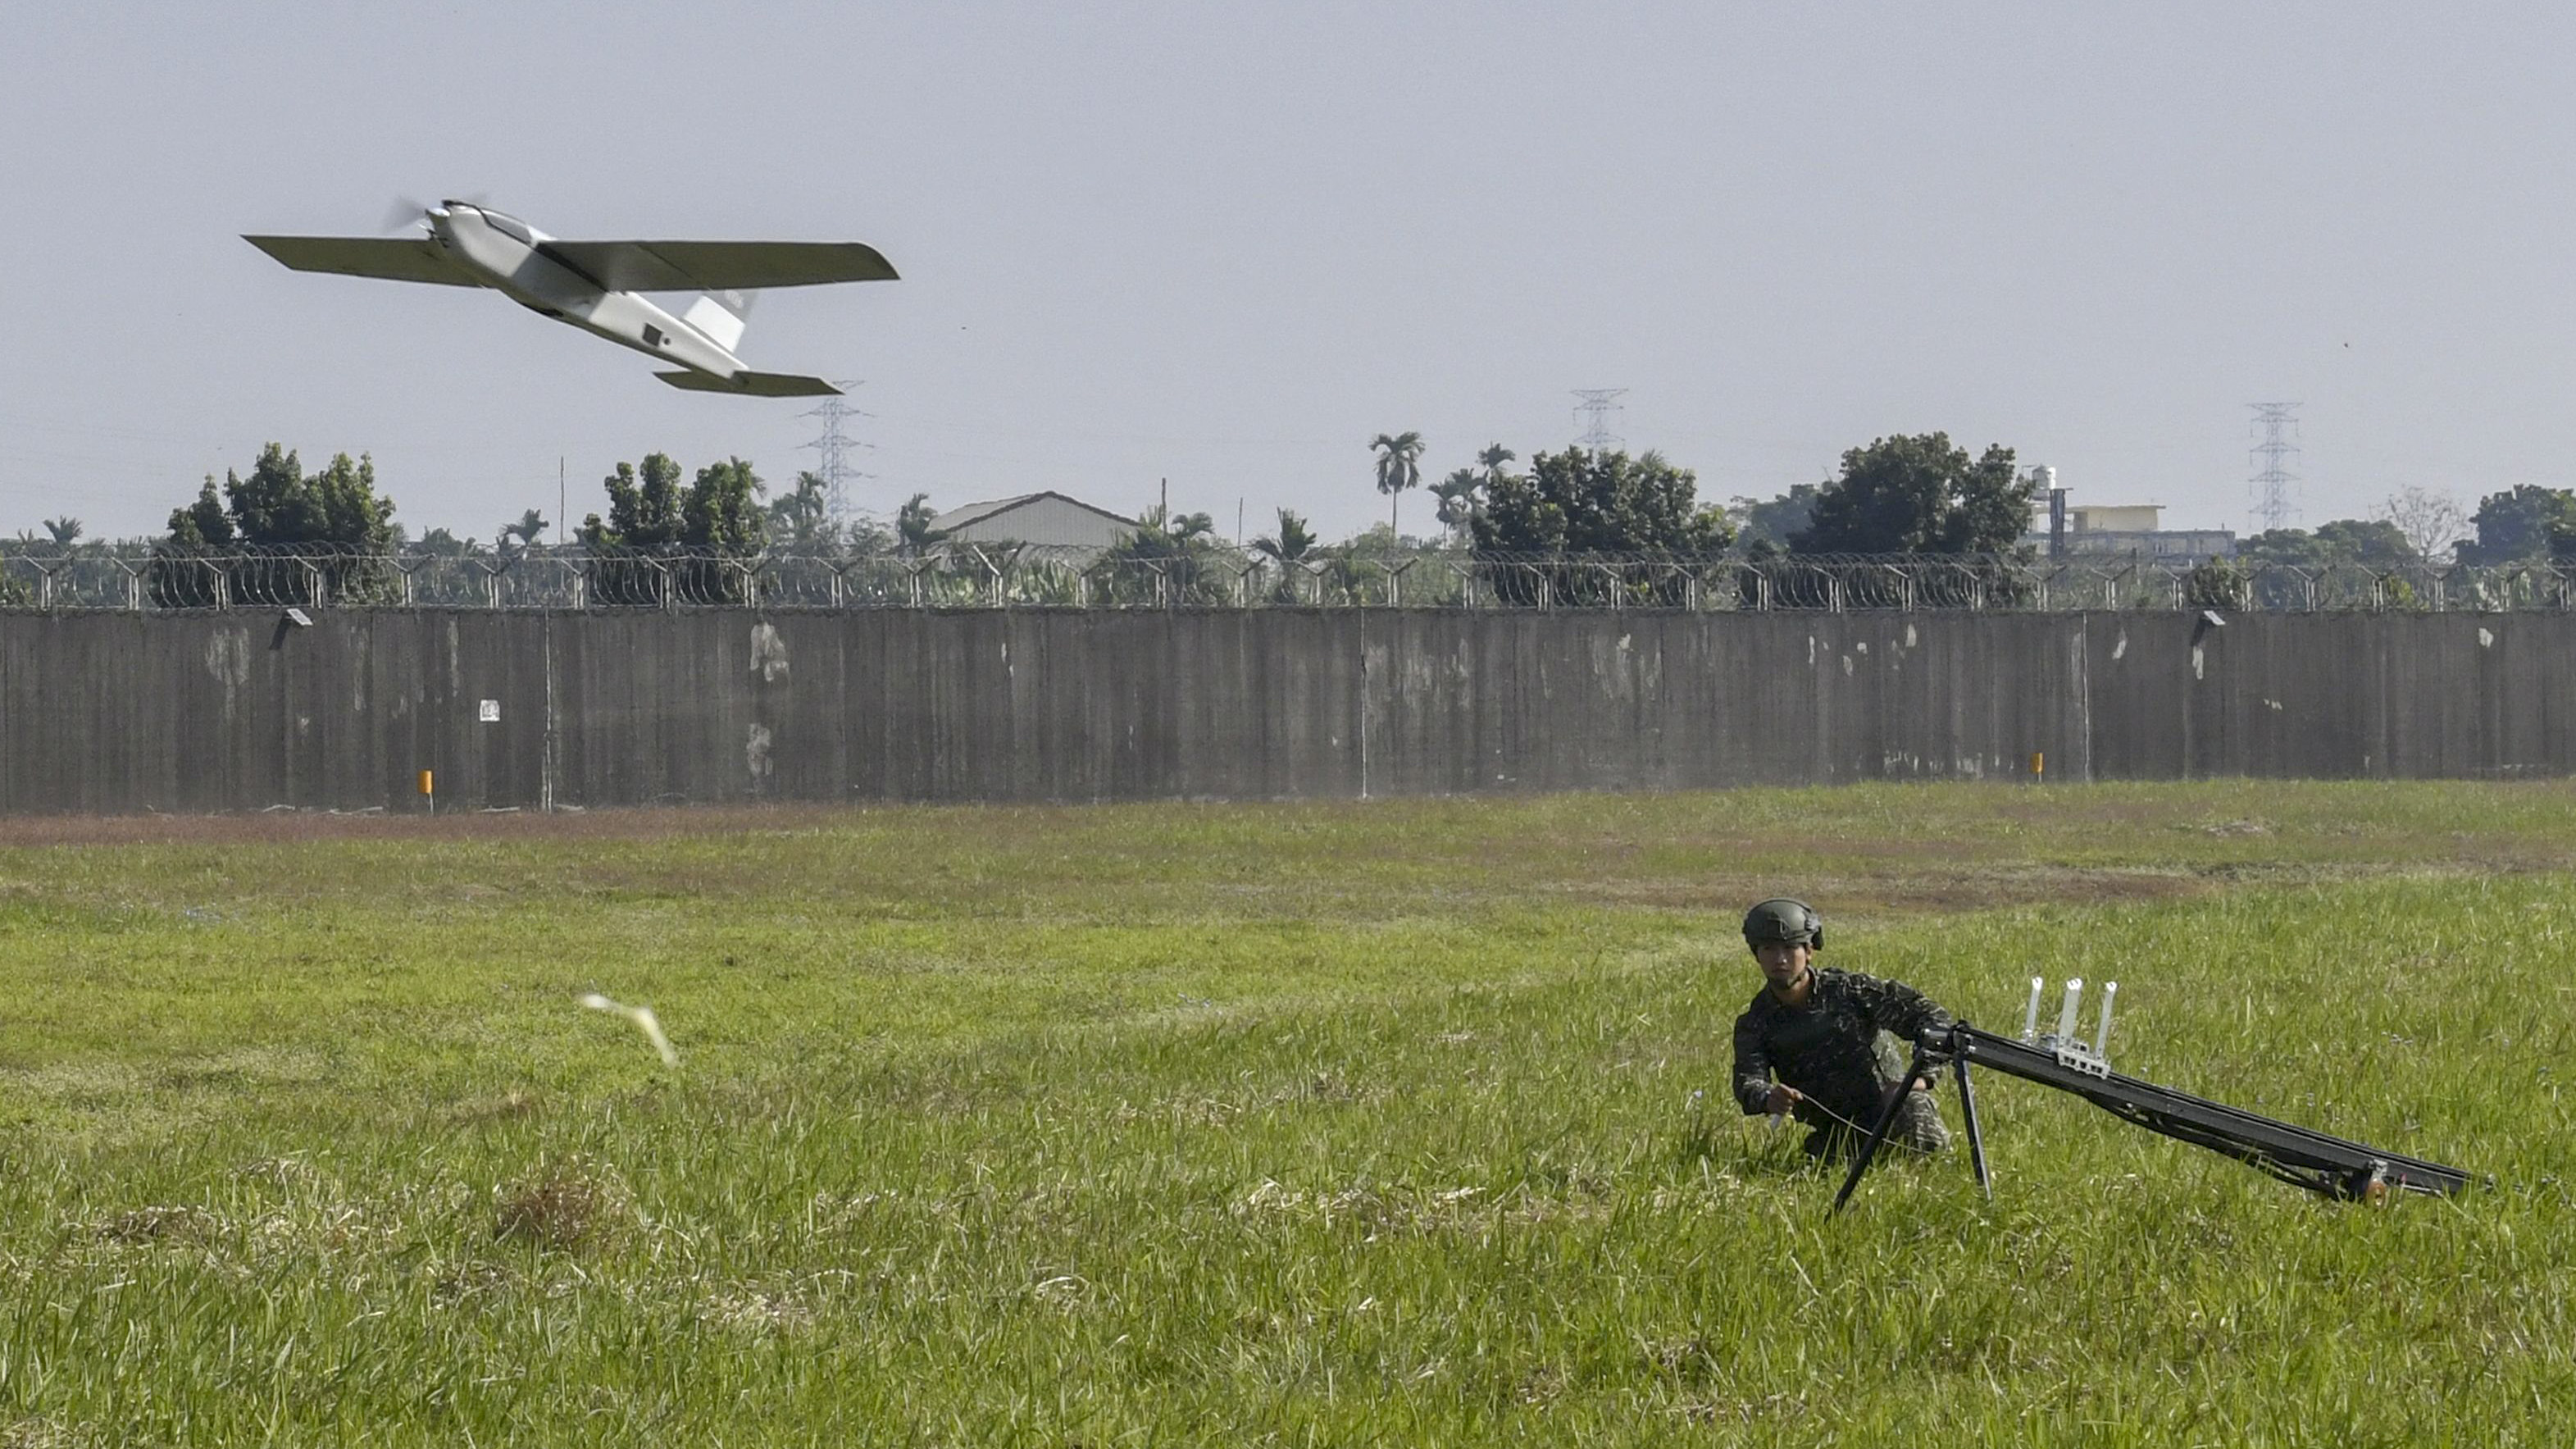 An indigenously-made Cardinal unmanned aerial vehicle (UAV) is launched by a navy serviceman during a military exercise at the Pingtung Air Force Base in southern Taiwan on January 24, 2019. (SAM YEH/AFP/Getty Images)